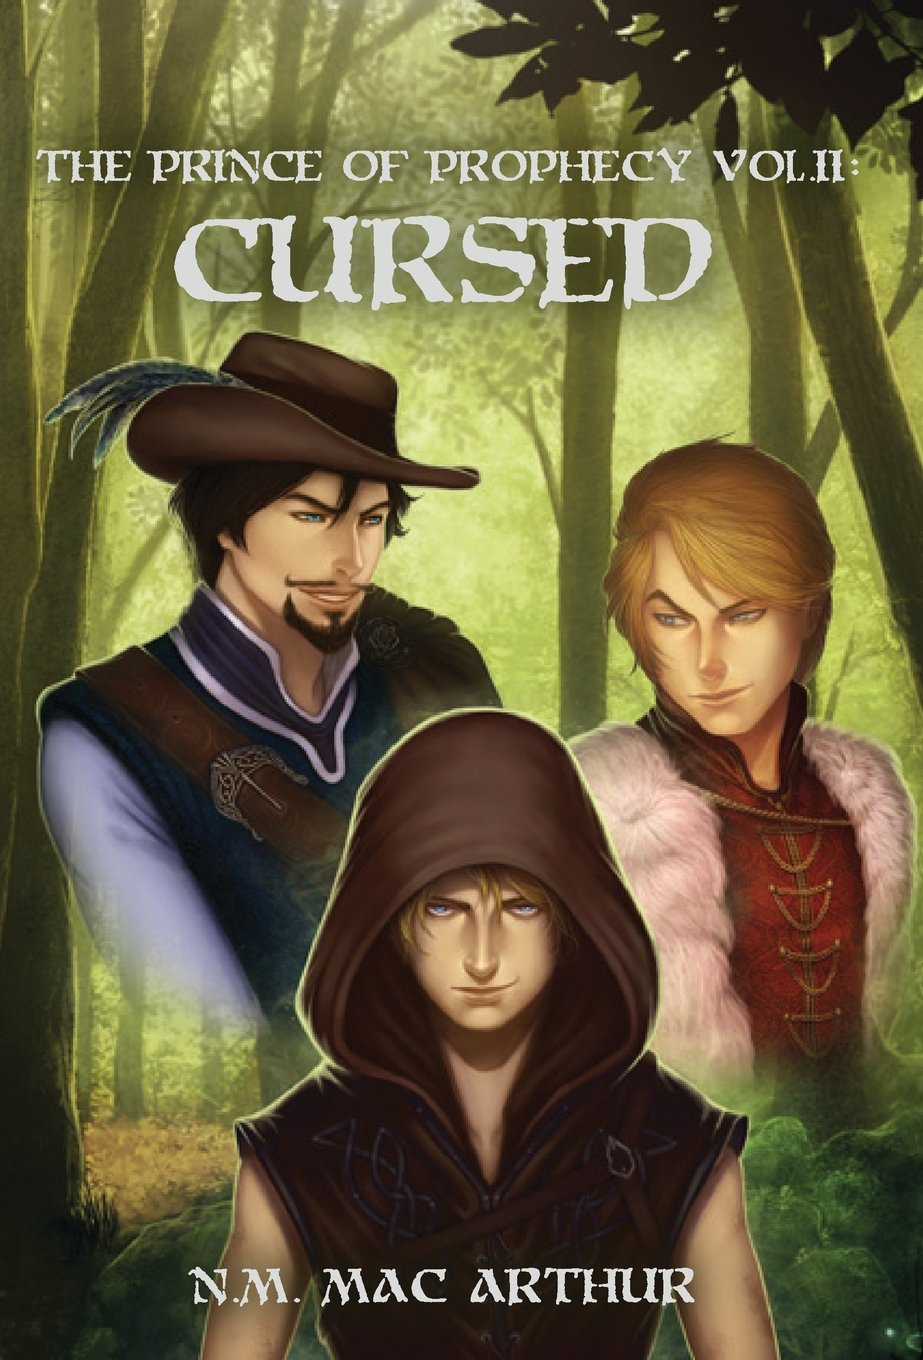 The Prince of Prophecy Vol. II: Cursed pdf